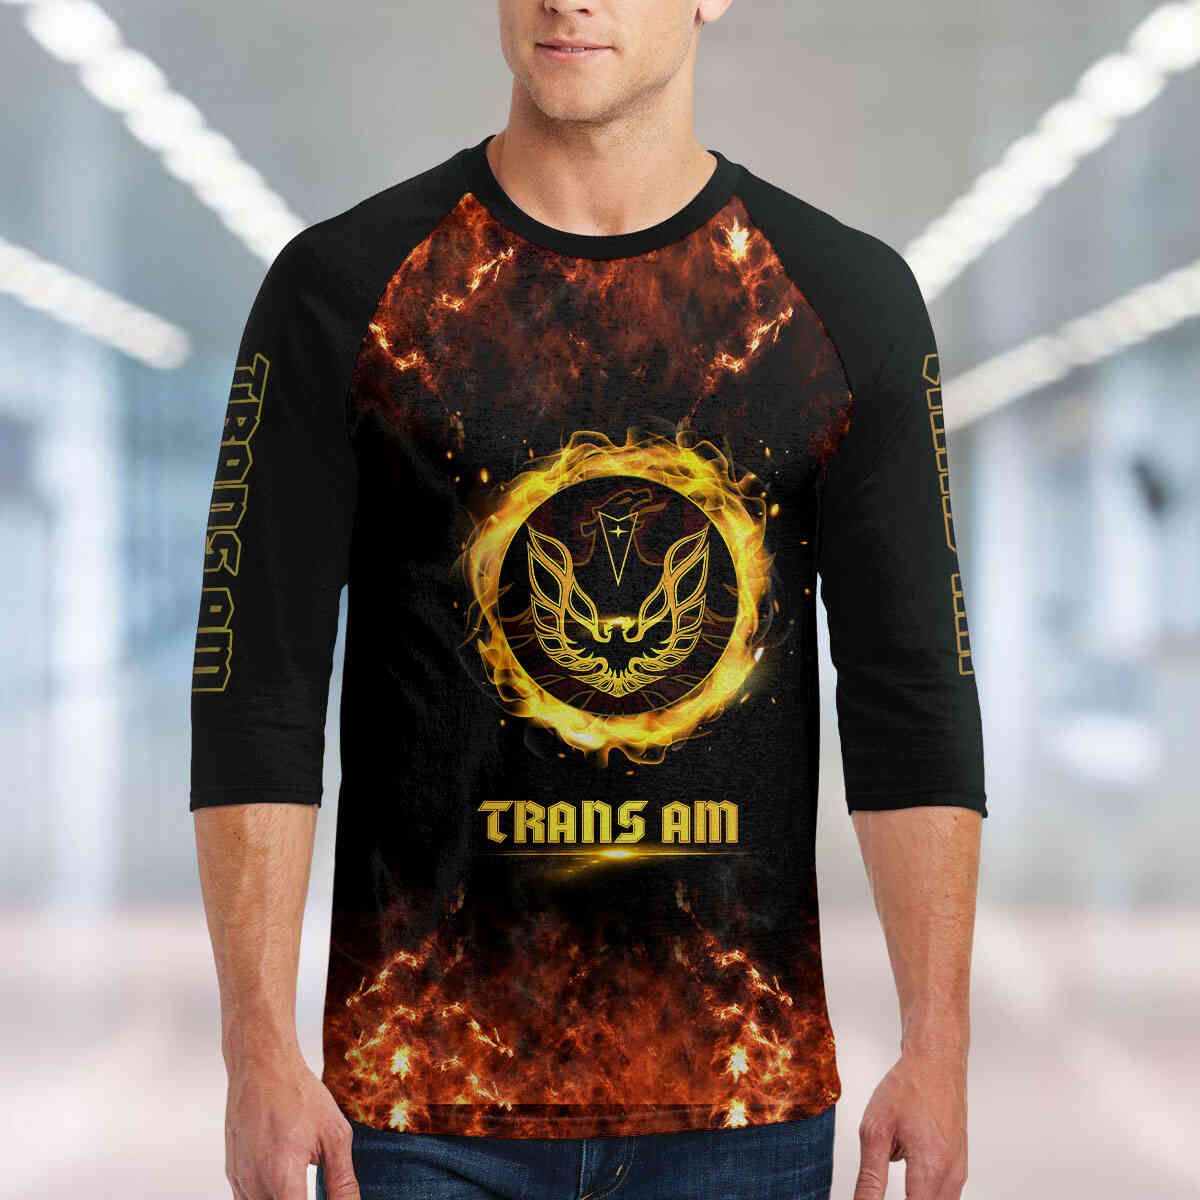 Trans Am Unisex 3/4-Sleeve Raglan T-Shirt